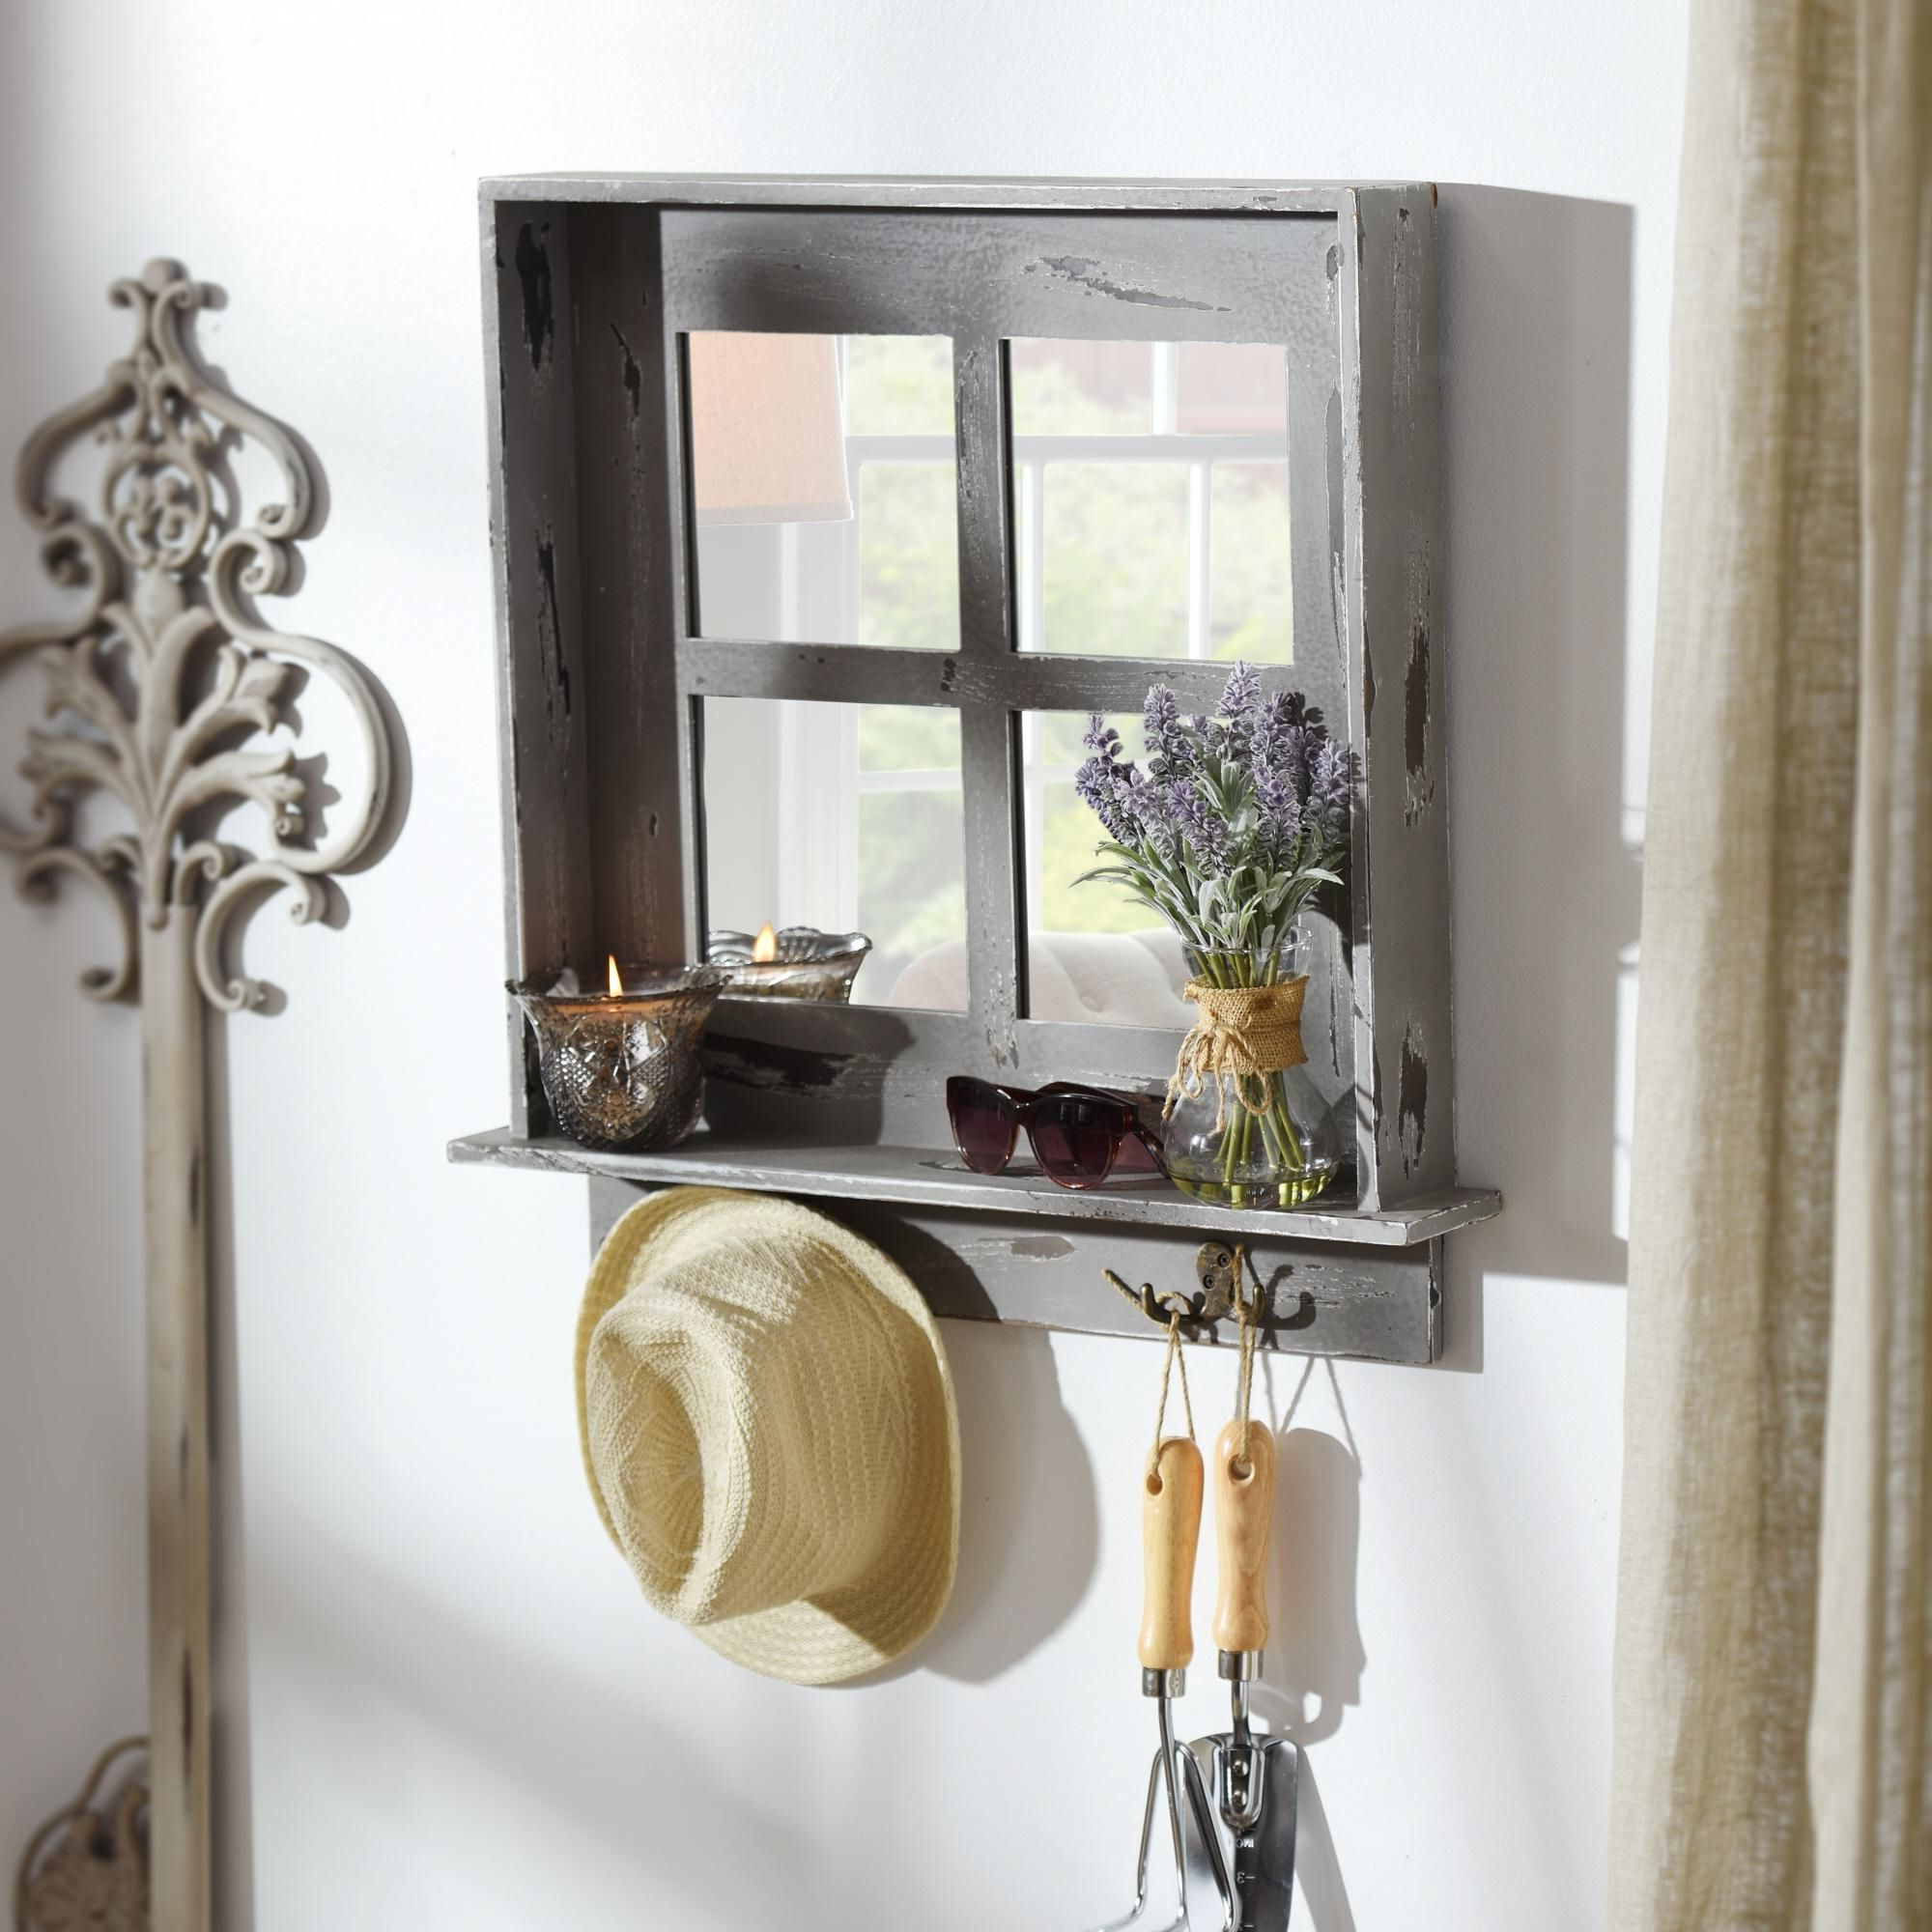 Newest Product Details Gray Window Pane Wall Shelf Mirror With Hooks In Throughout Wall Mirrors With Shelf And Hooks (View 7 of 20)